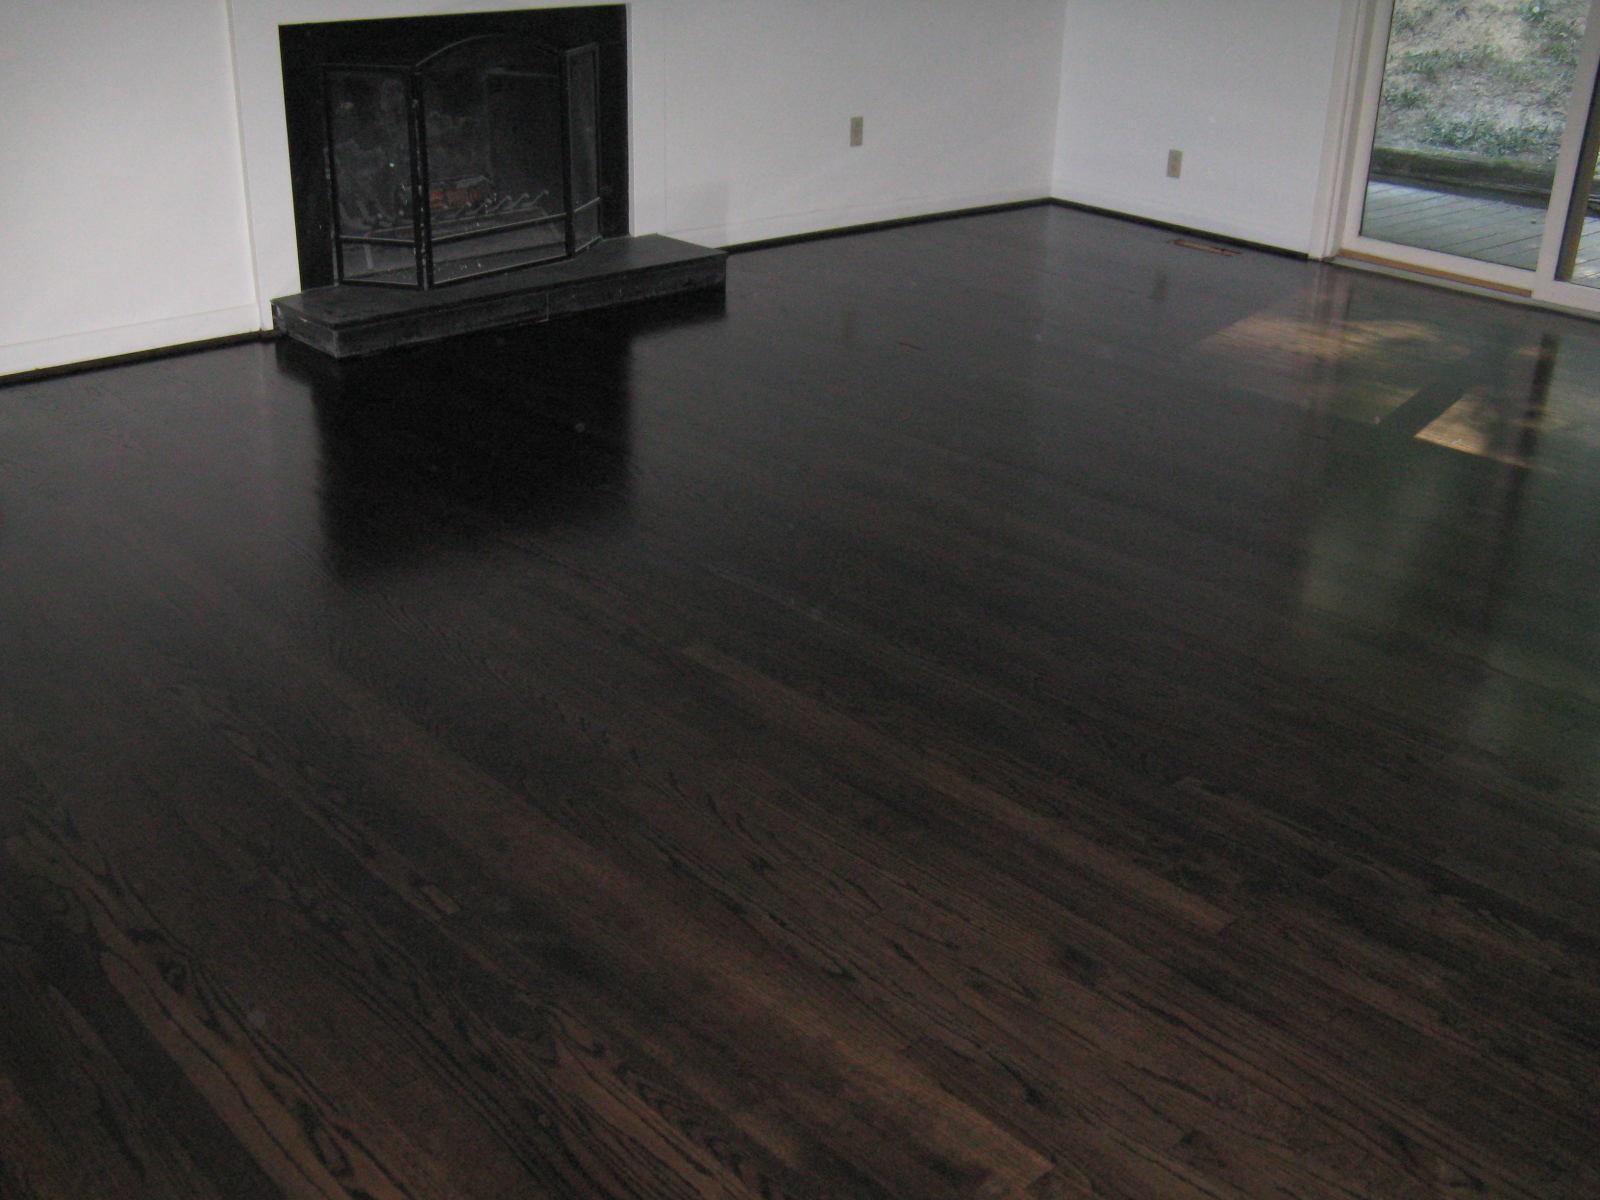 Ebony Stained Hardwood Floors M O D F R U G A L